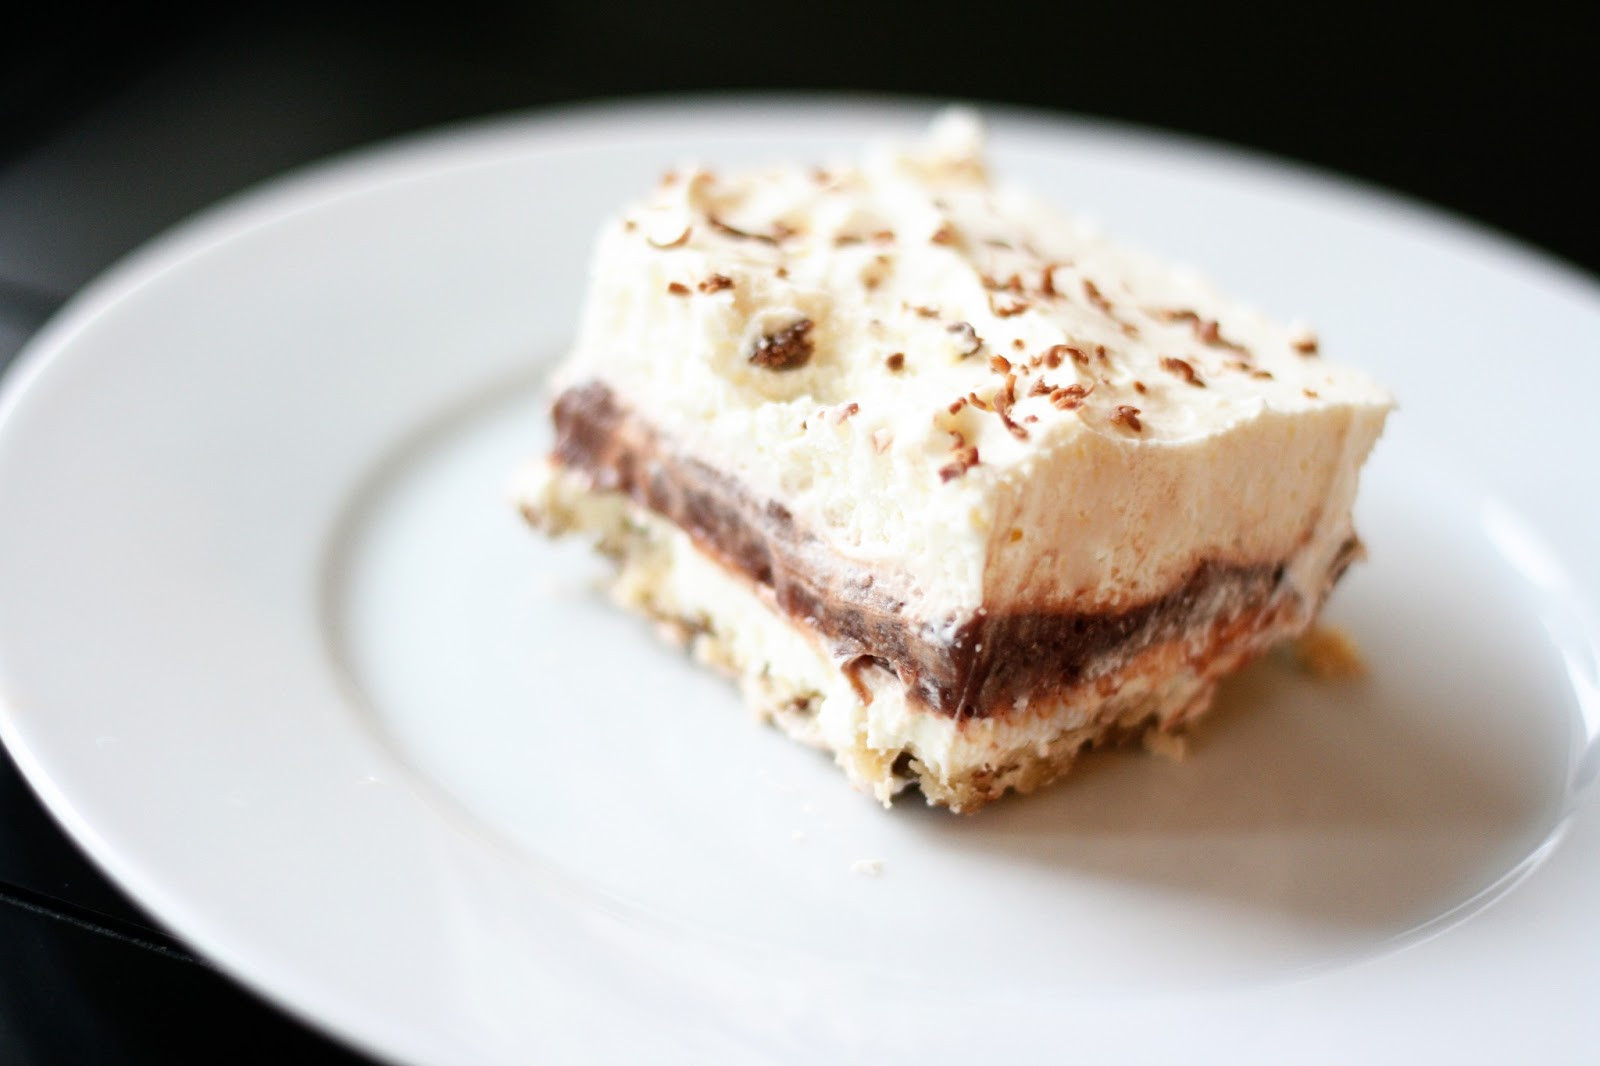 Low Carb Chocolate Desserts  Naughty Carbs Chocolate Pudding Dessert Low Carb